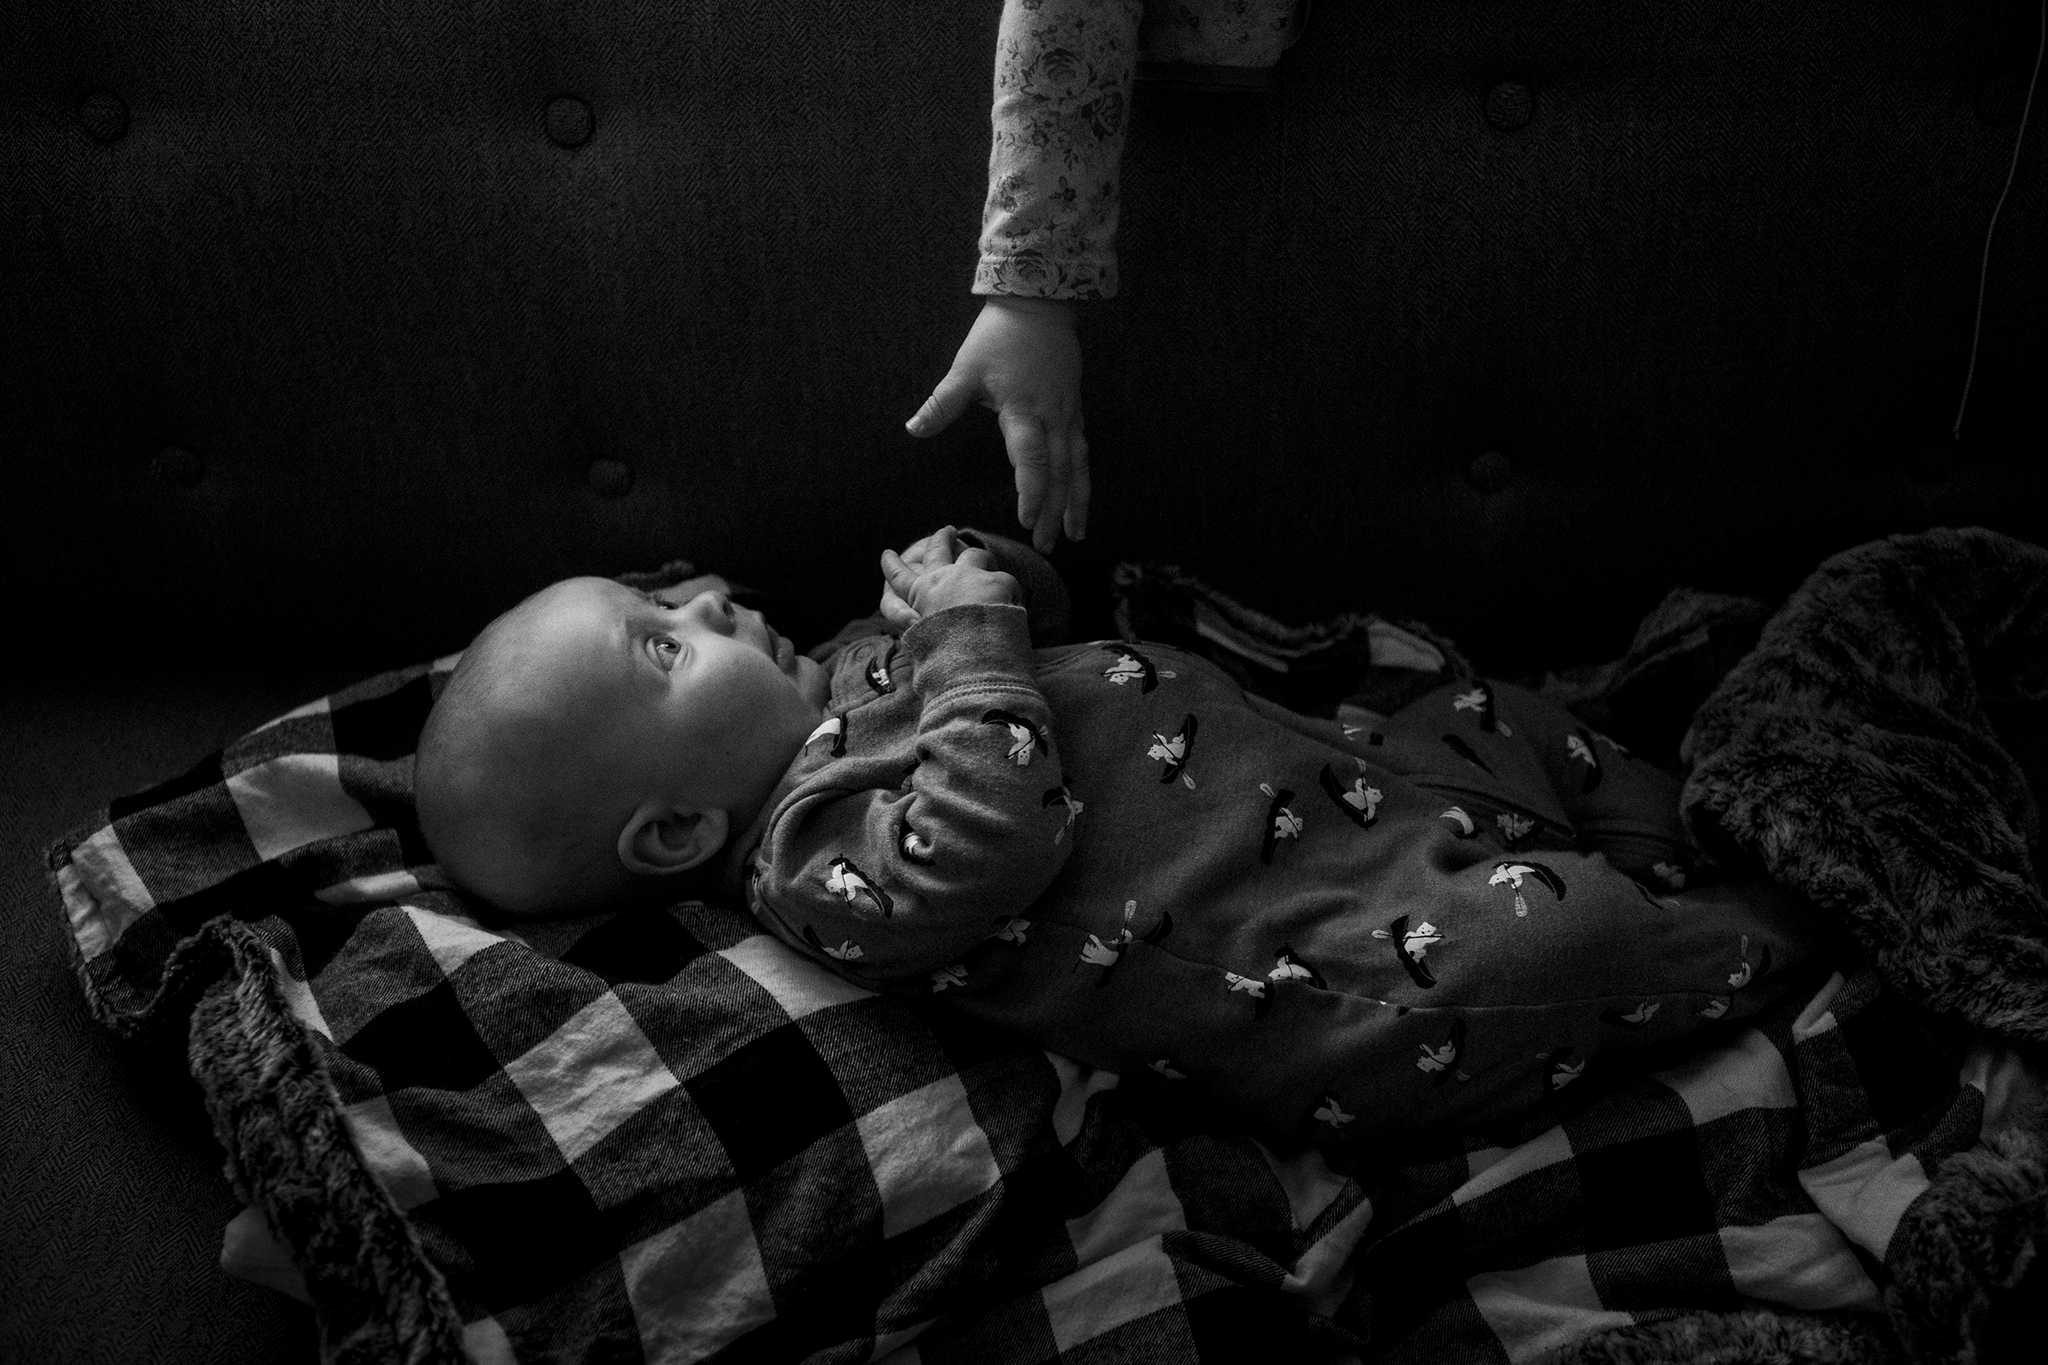 dramatic family photo of connecticut baby brother who's sister is reaching out to him